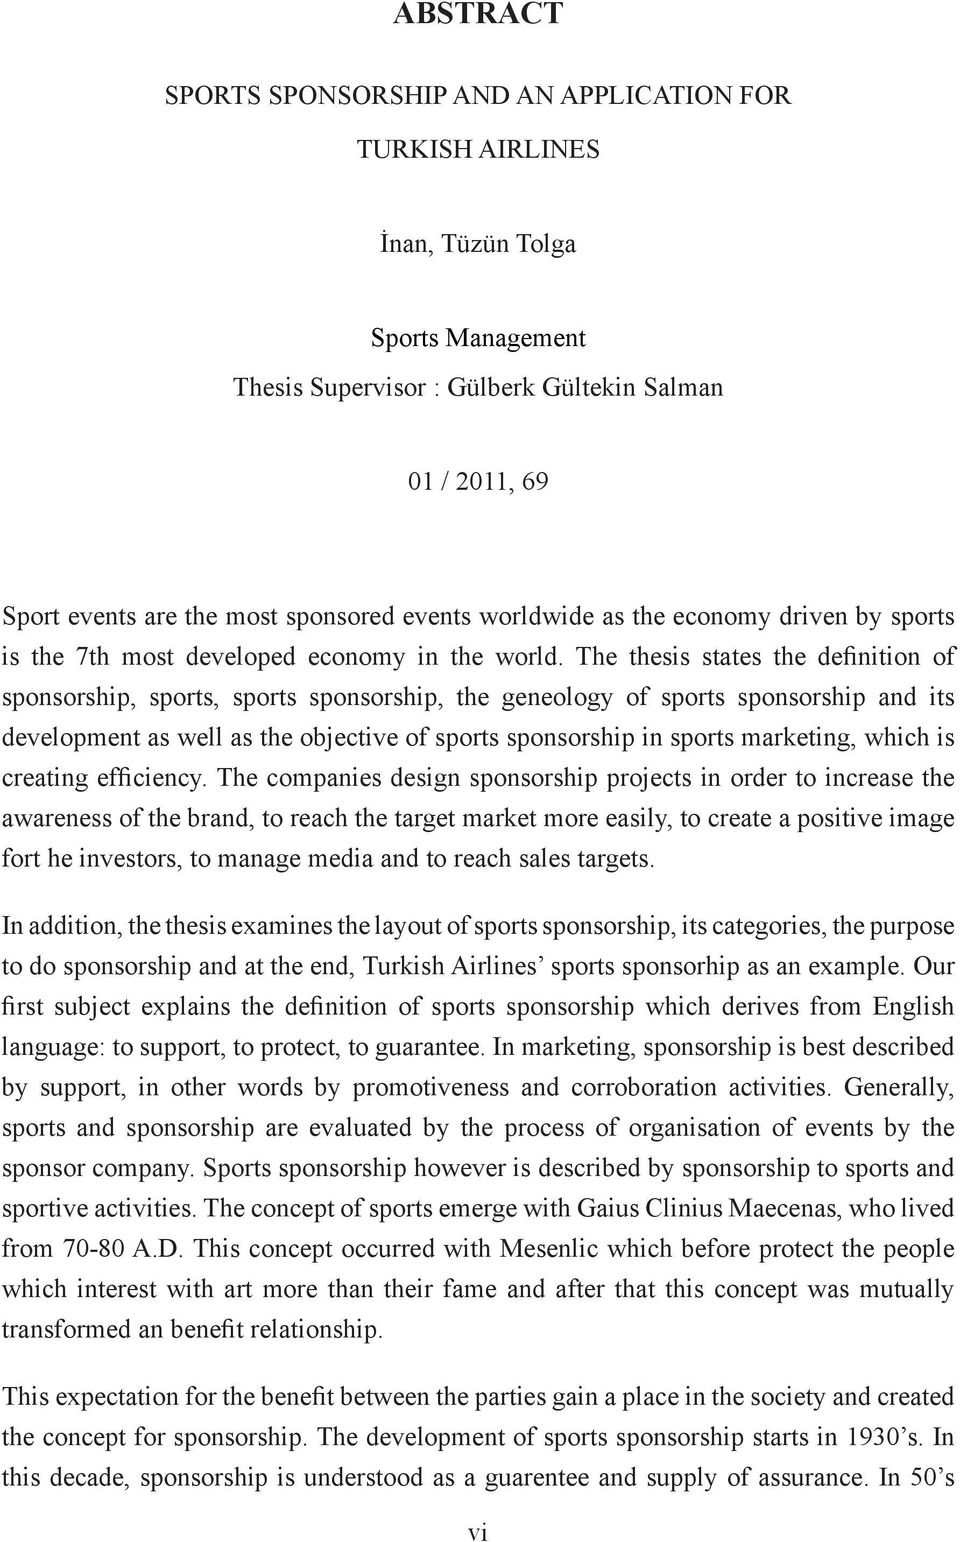 The thesis states the definition of sponsorship, sports, sports sponsorship, the geneology of sports sponsorship and its development as well as the objective of sports sponsorship in sports